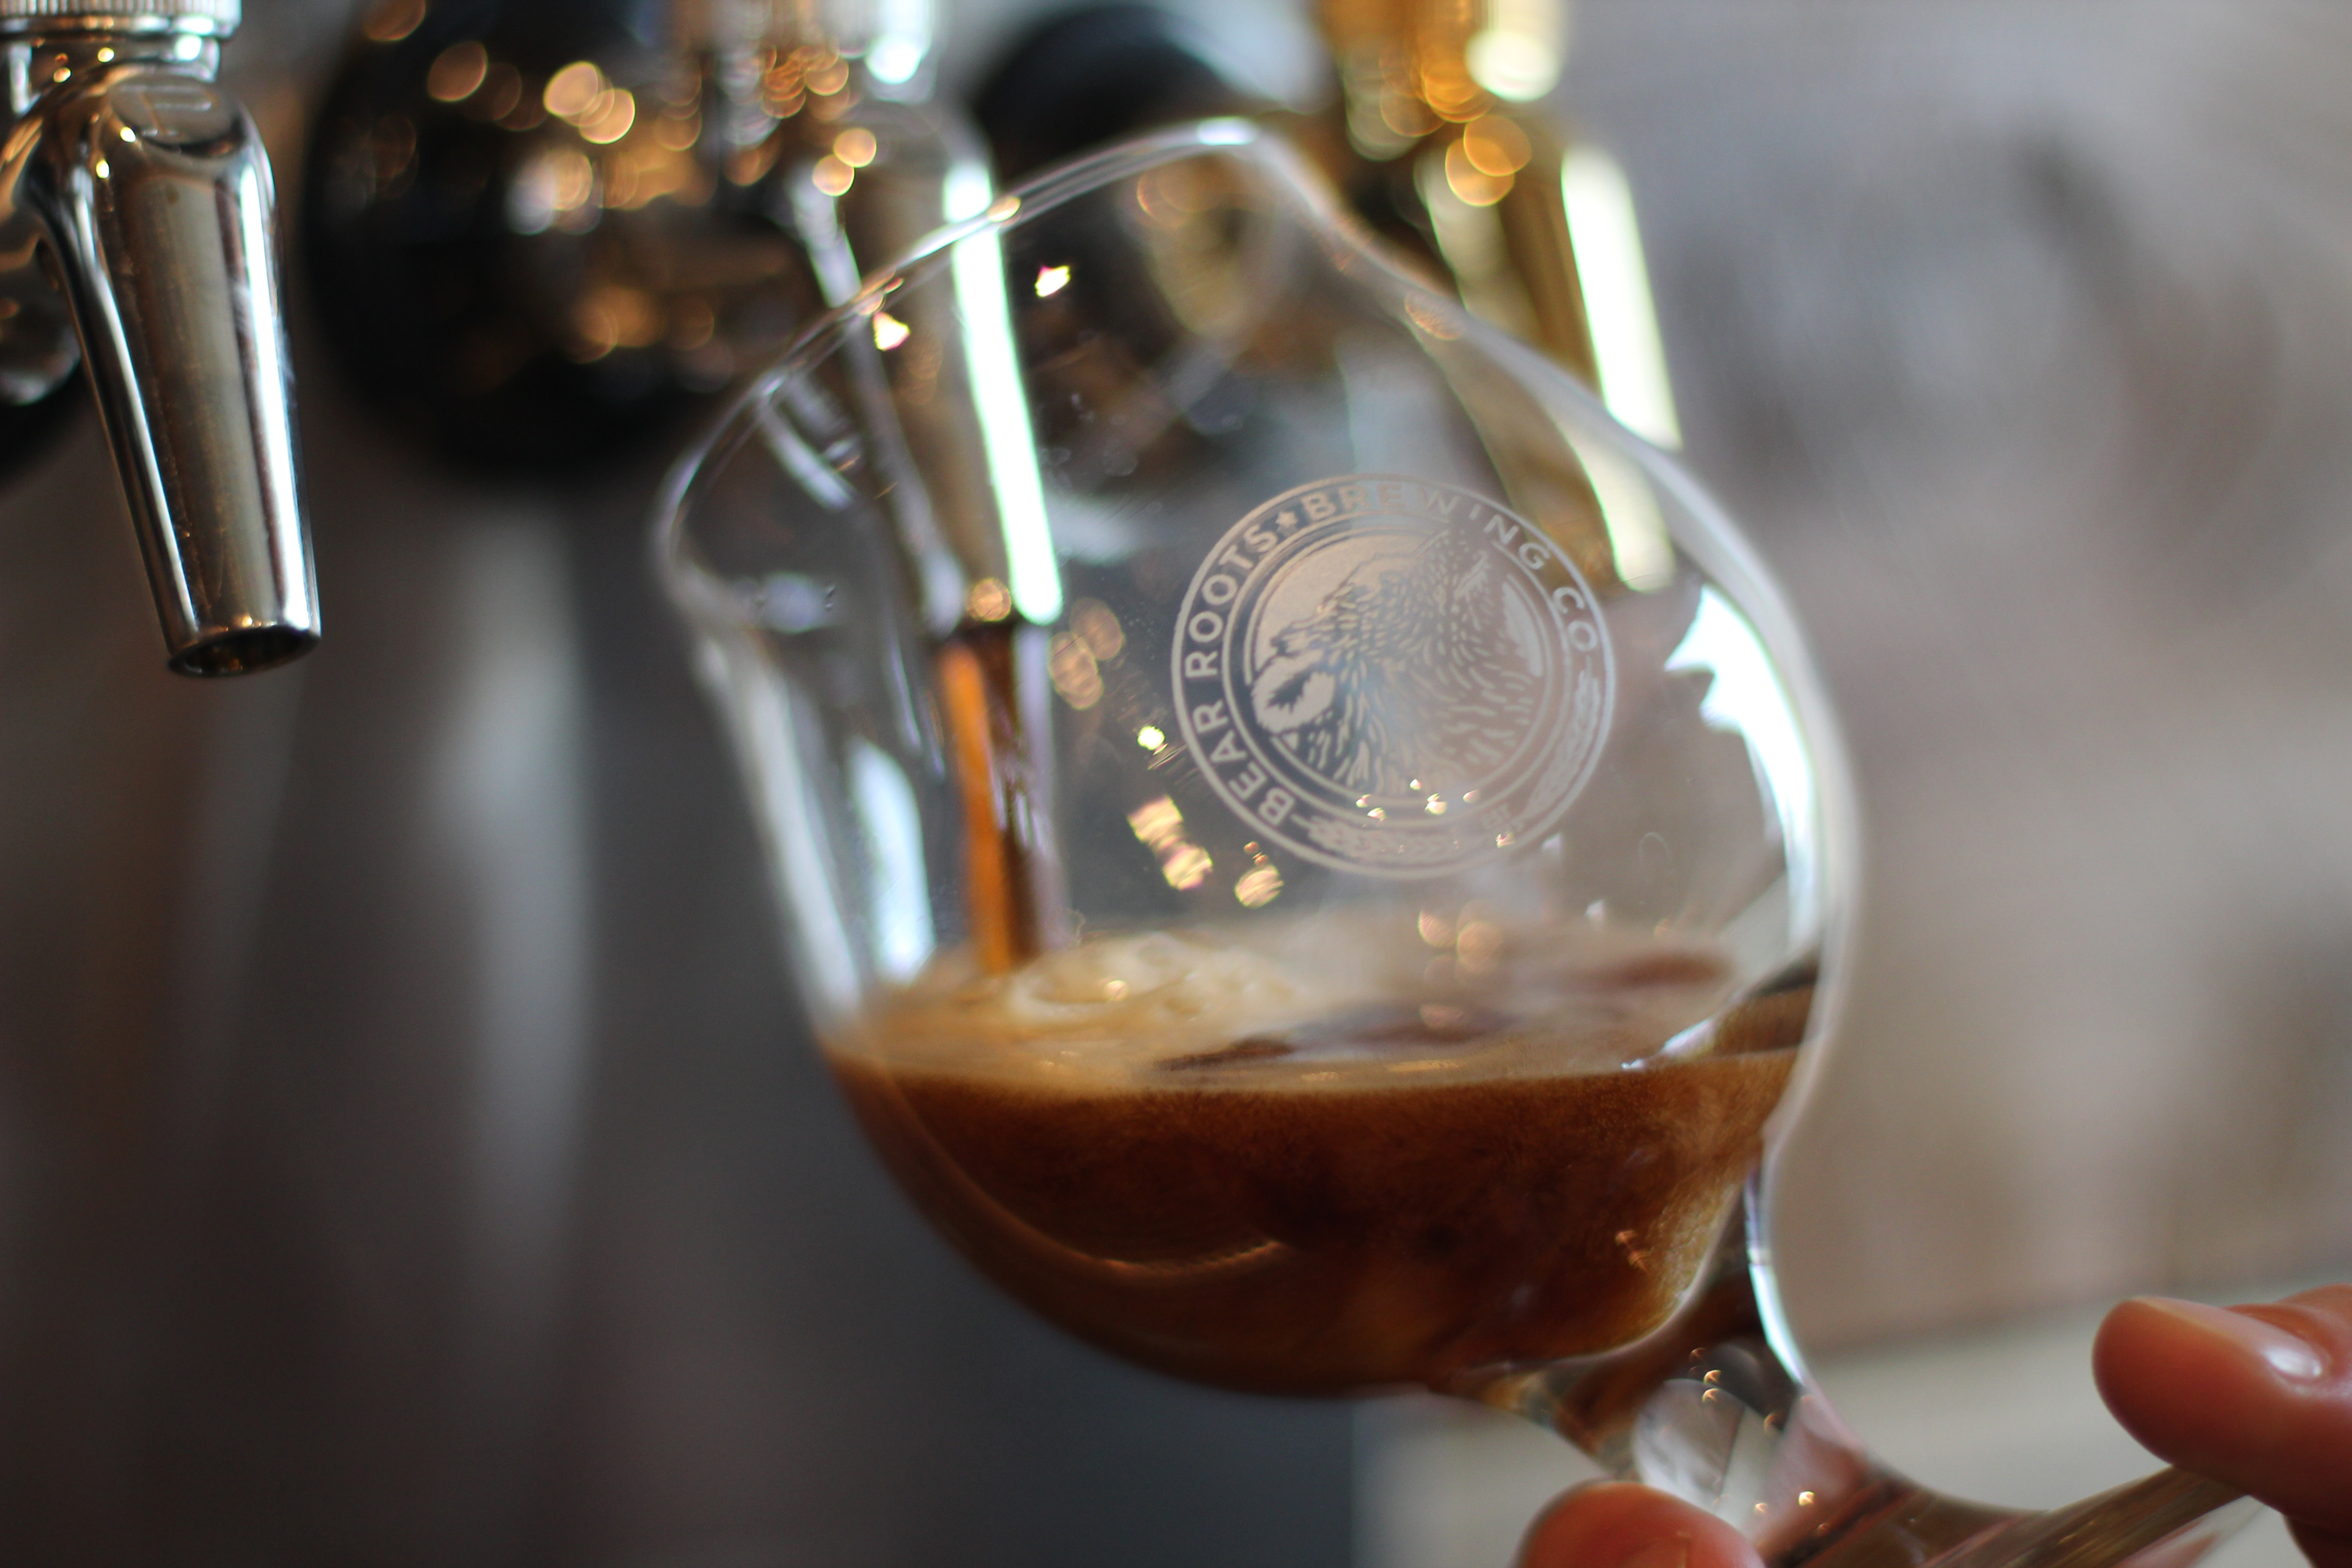 This Scotch ale is one of eight inaugural brews on tap at Bear Roots.